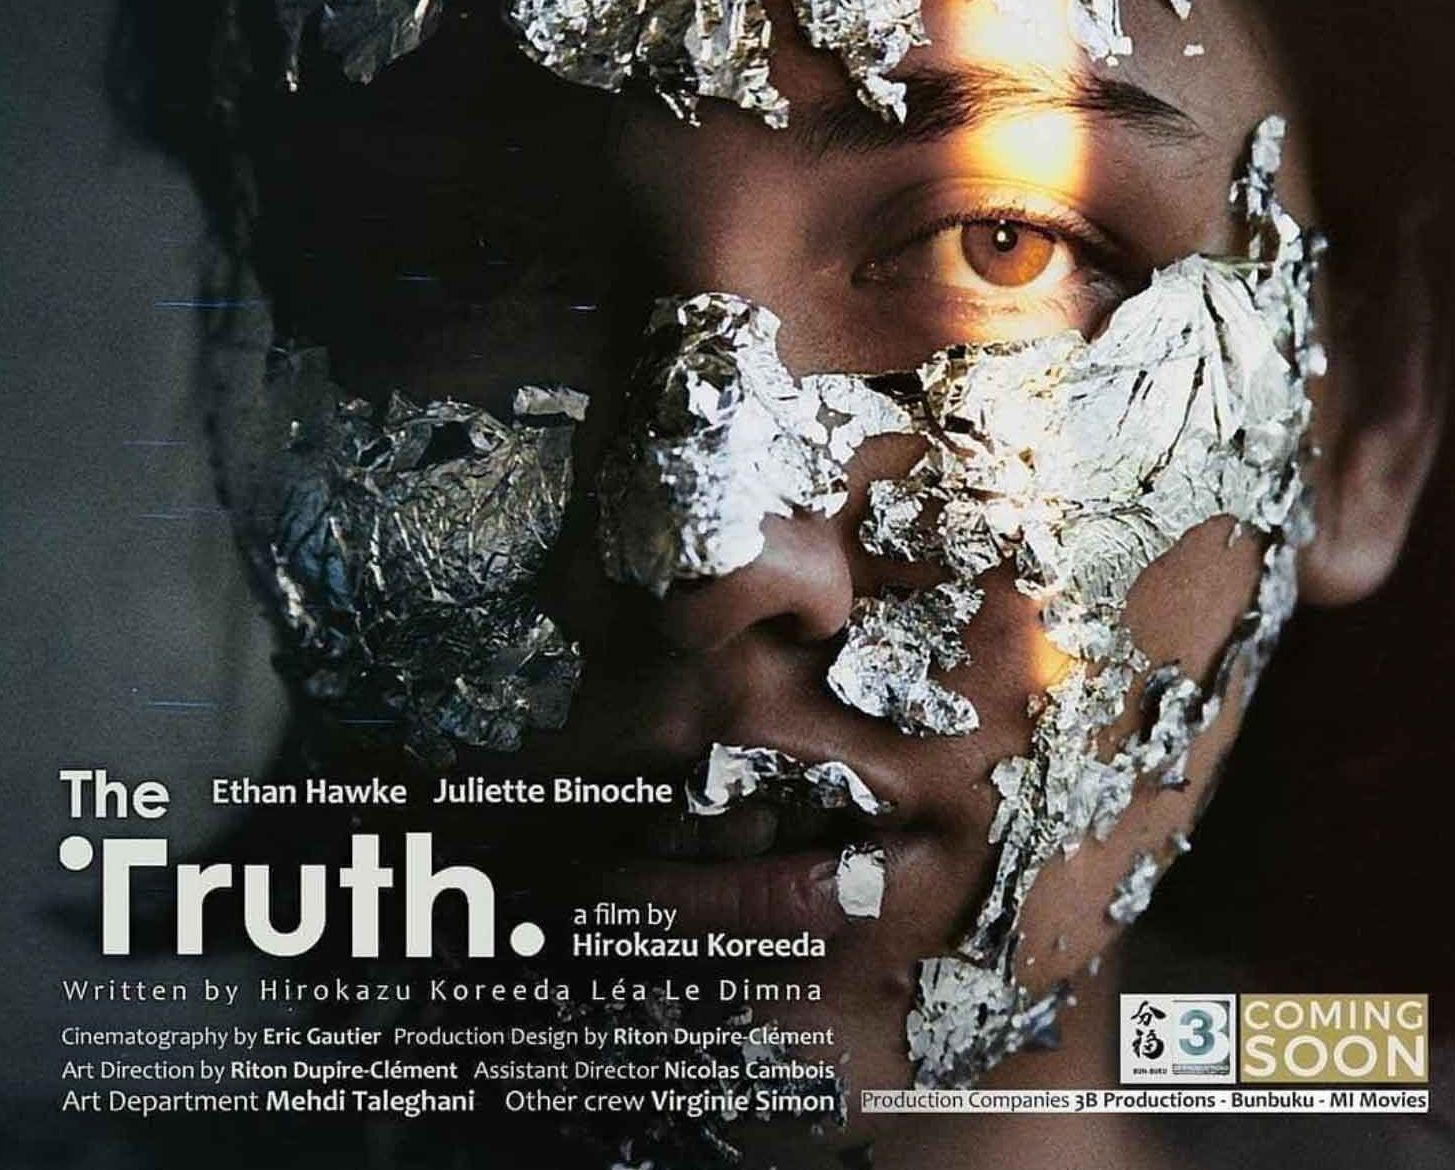 'The Truth' - Hirokazu Kore-eda